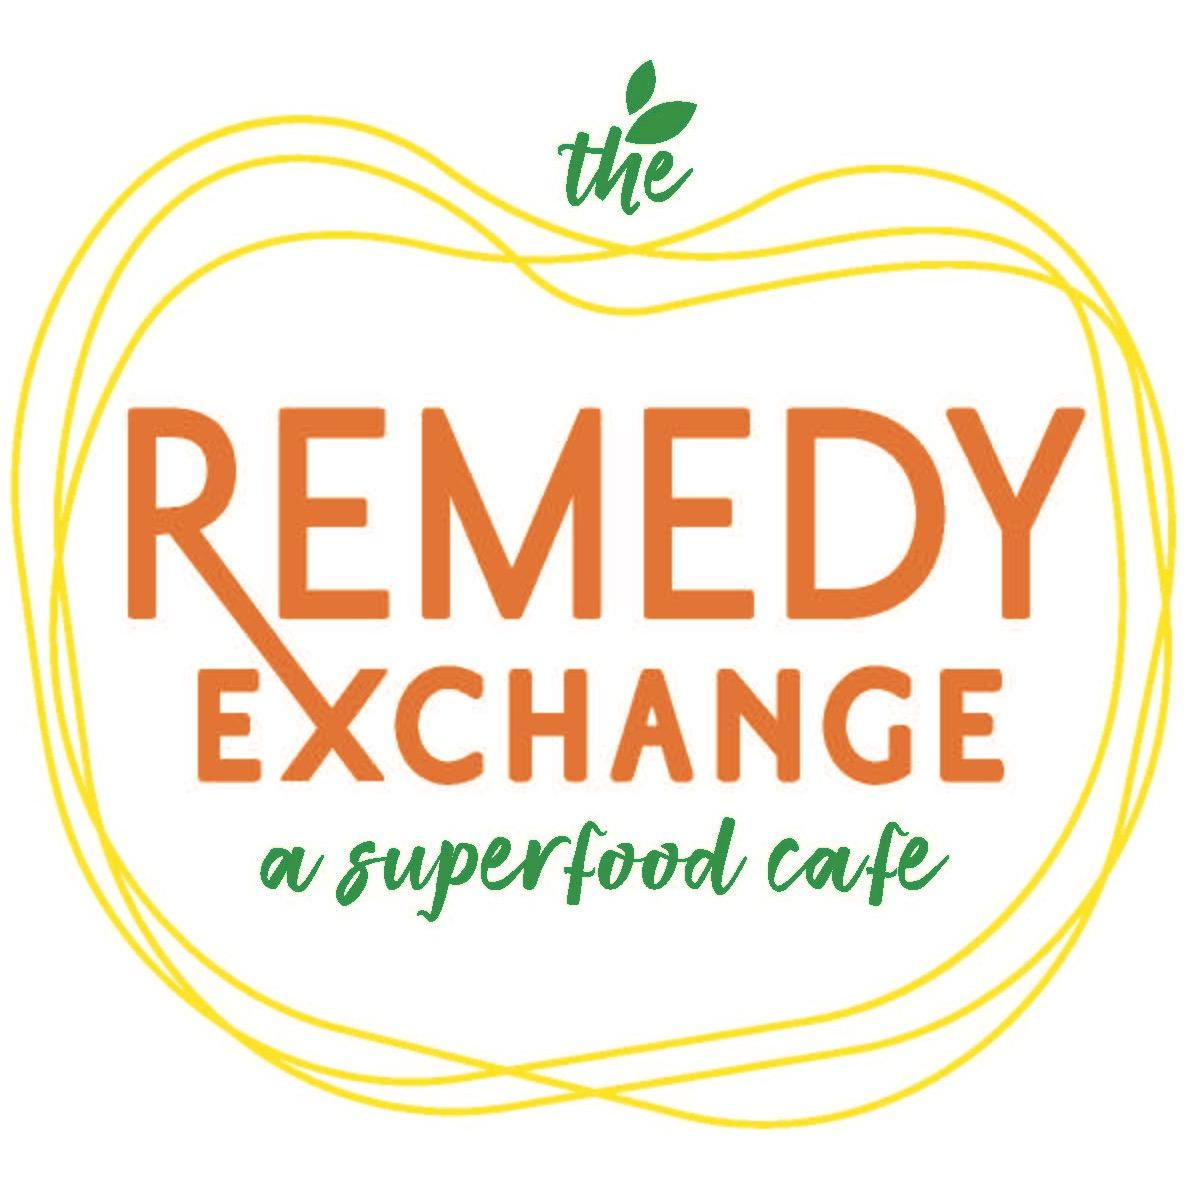 The Remedy Exchange